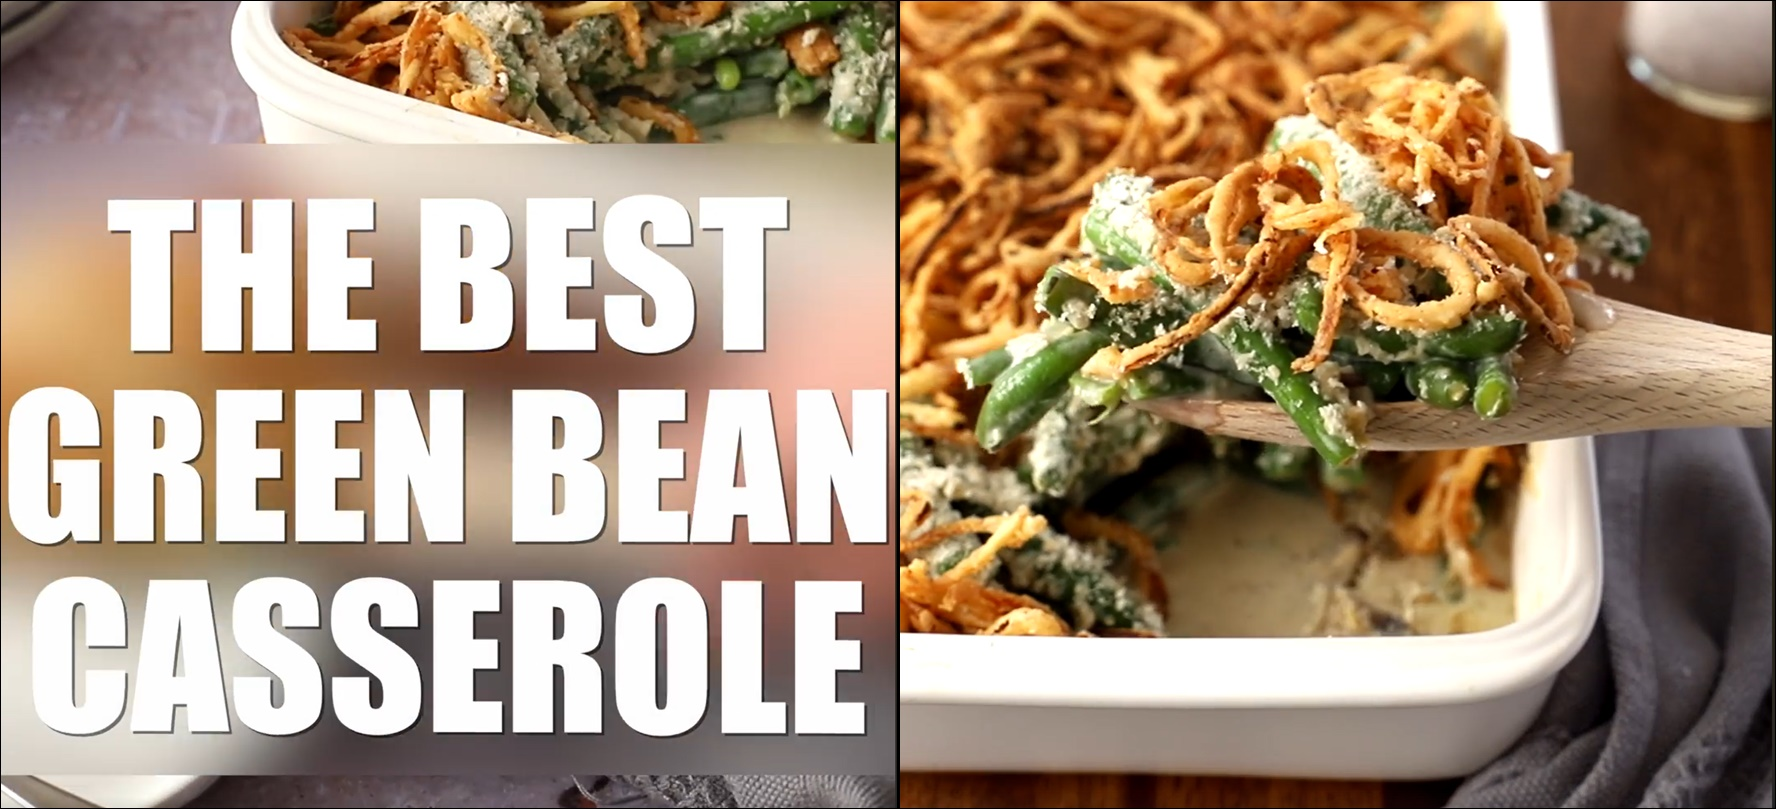 Best Green Bean Casserole From Scratch NO CANS